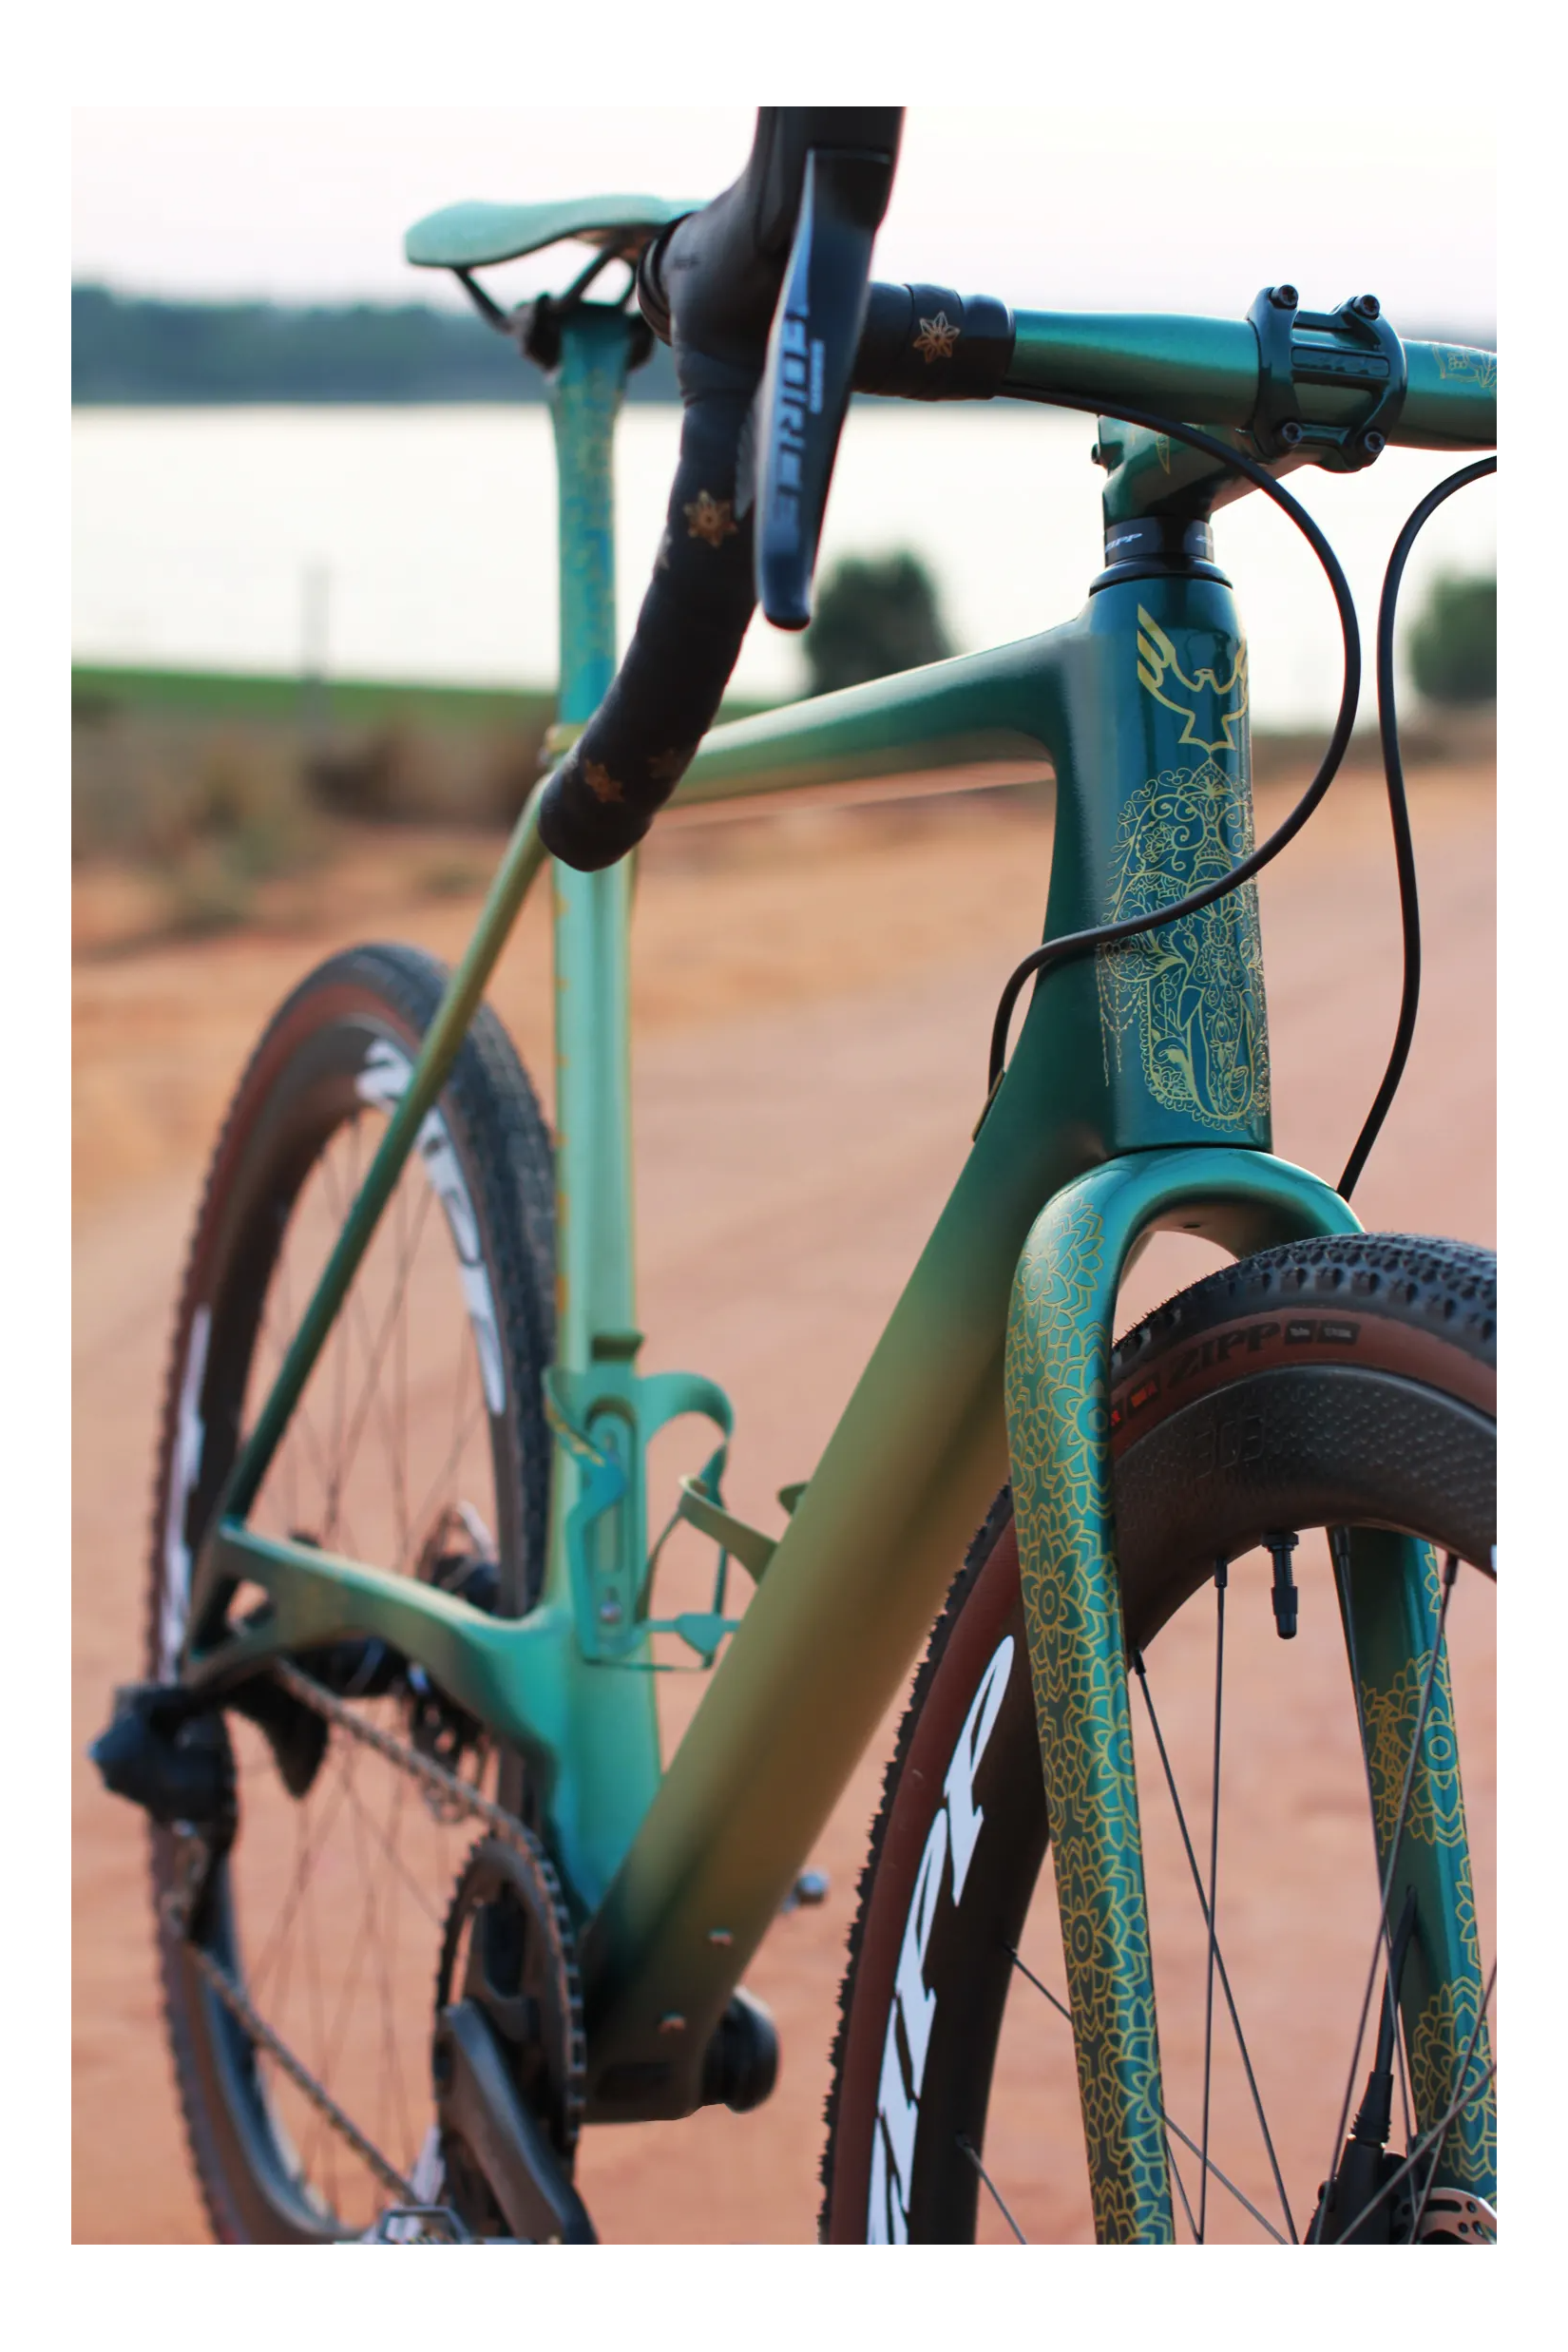 A close up of  green bike  frame with custom  a gold pattern